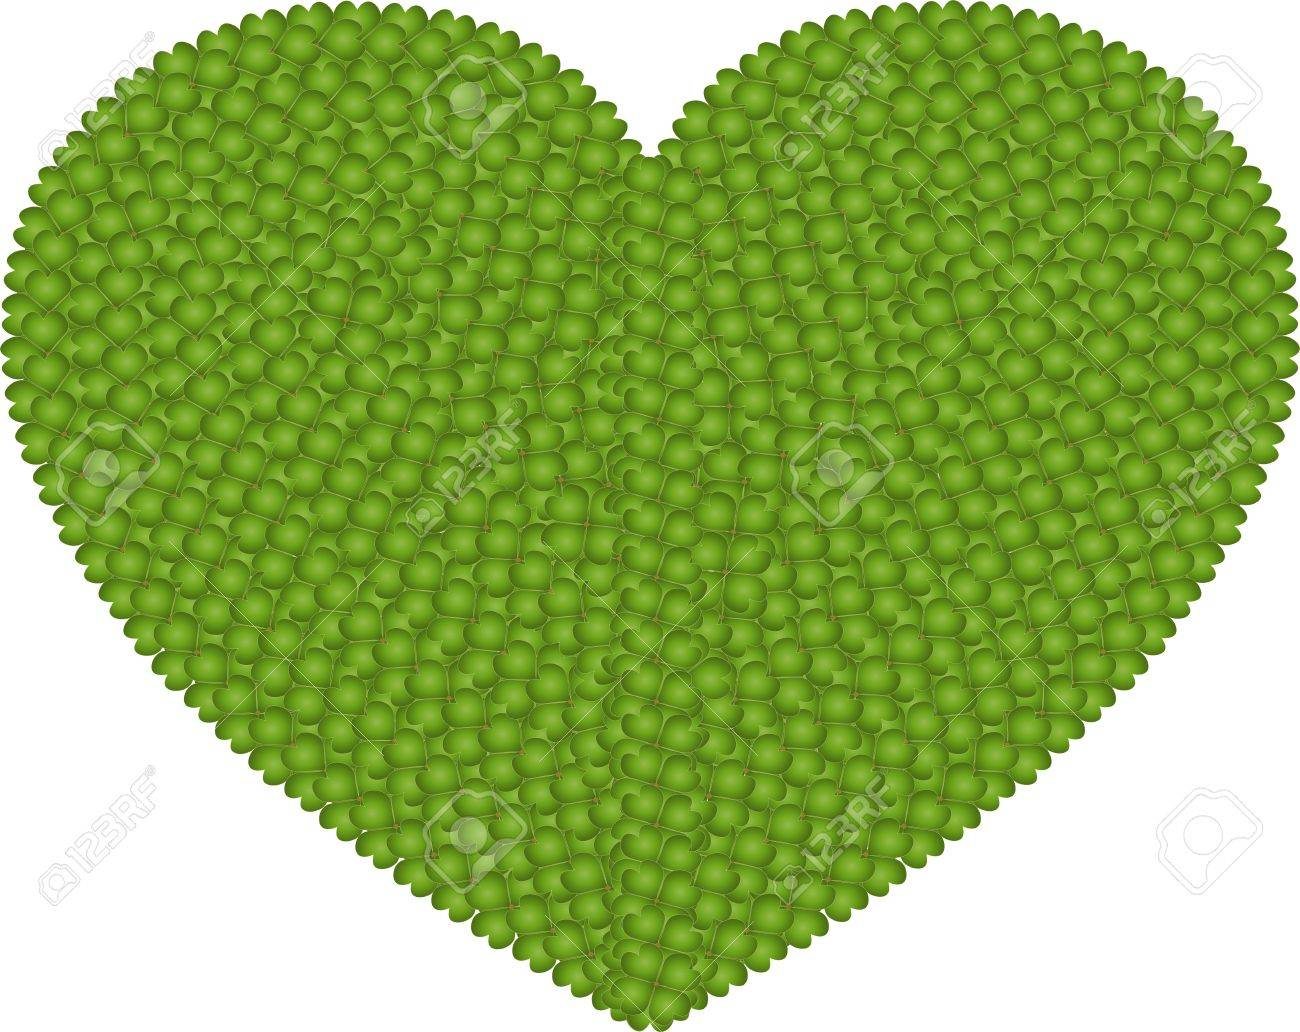 Ecology and Love Concept, Fresh Green Four Leaf Clover Forming A Big Heart Shape Isolated on White Background Stock Photo - 17155741